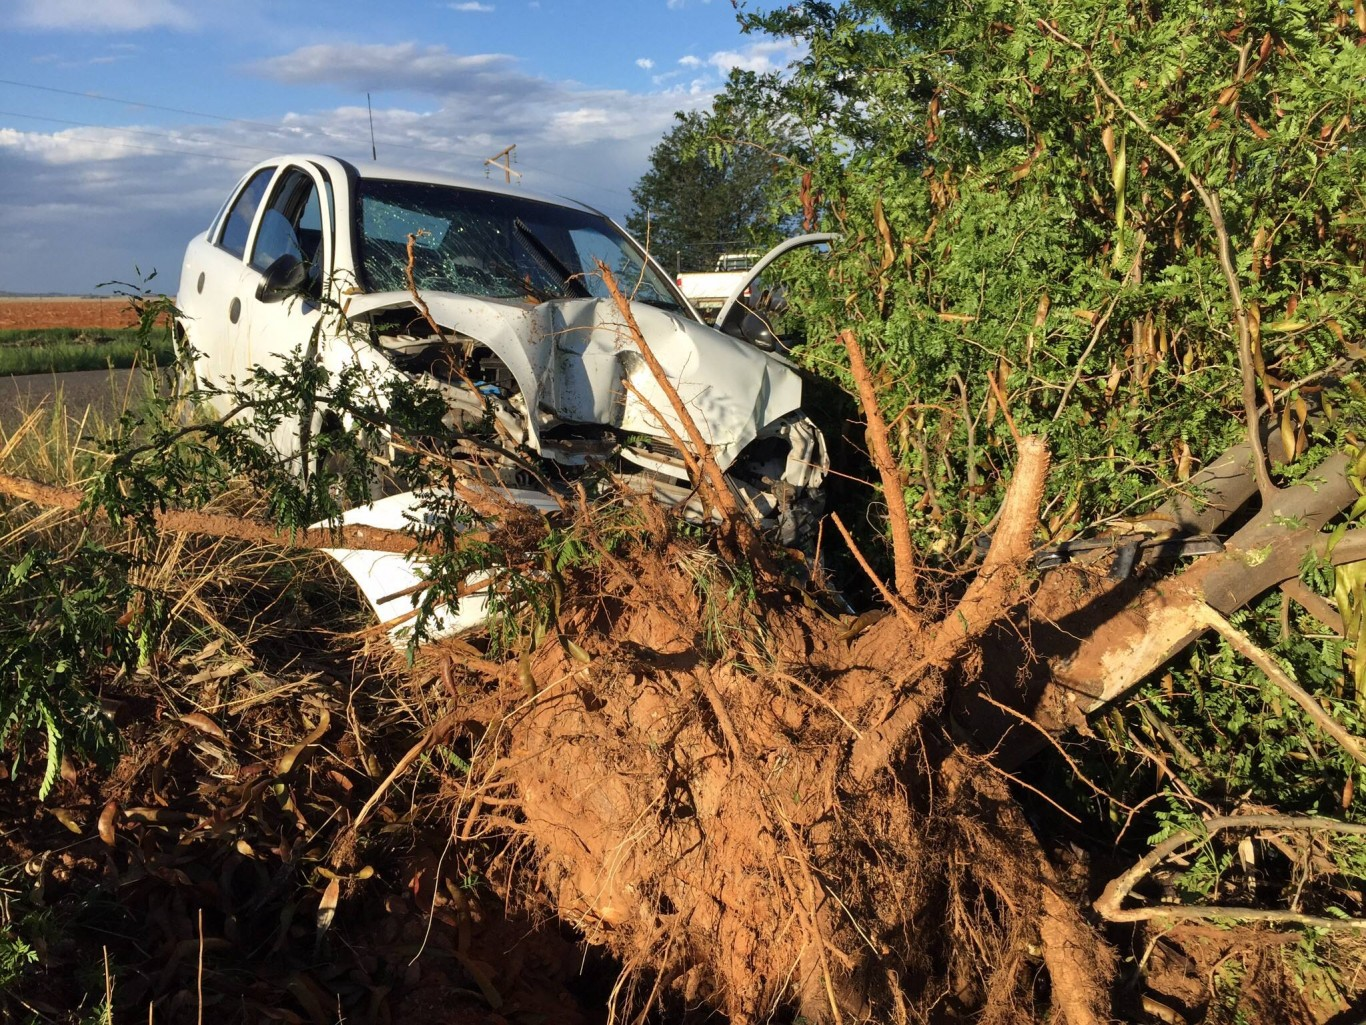 Scene from fatal crash into tree on Jagersfontein road